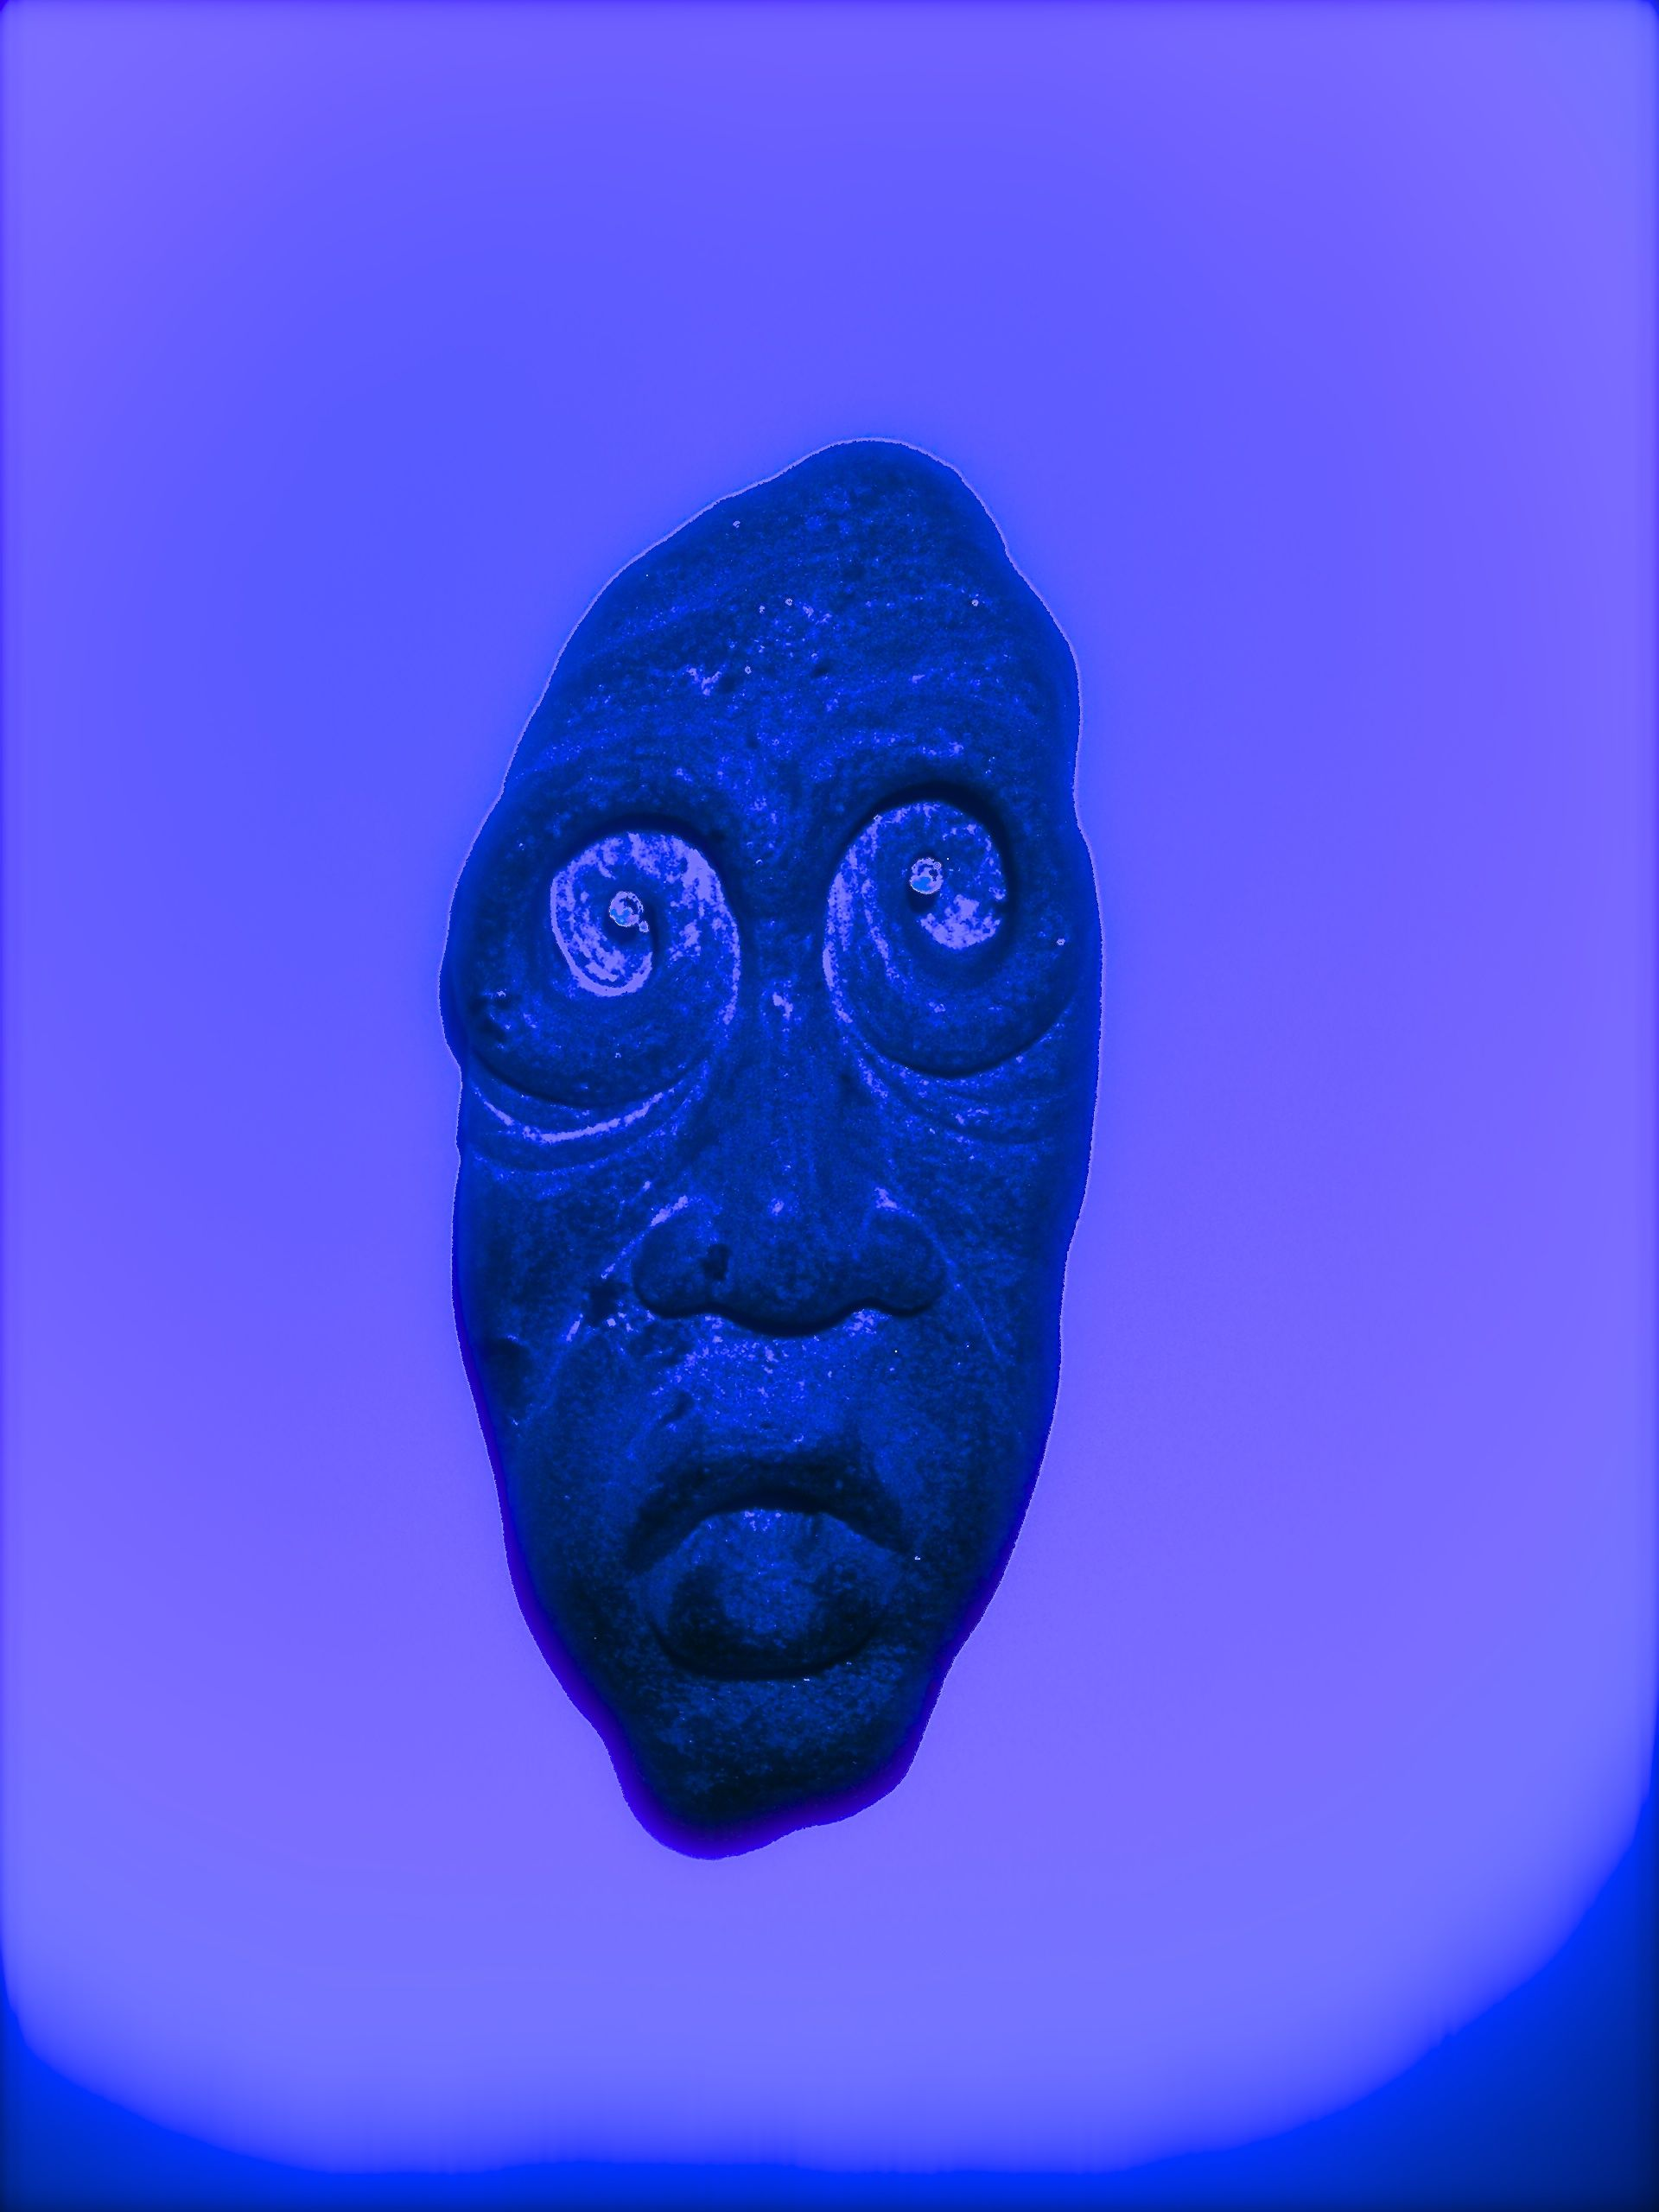 blue mask low res.jpg